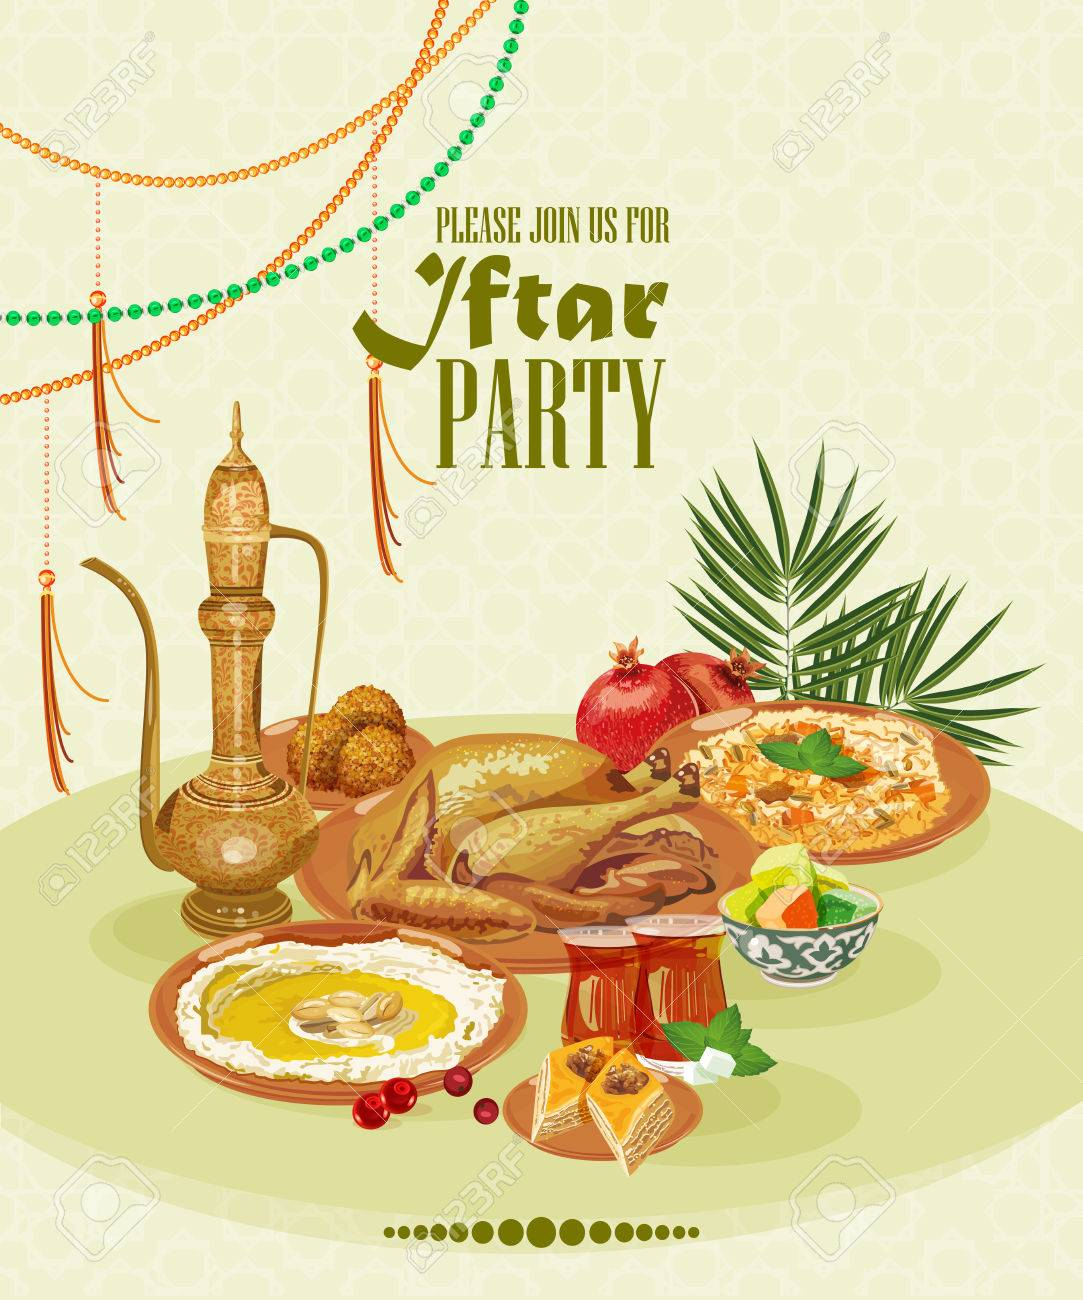 Iftar party celebration ramadan kareem beautiful invitation iftar party celebration ramadan kareem beautiful invitation card stock vector 39572119 stopboris Gallery